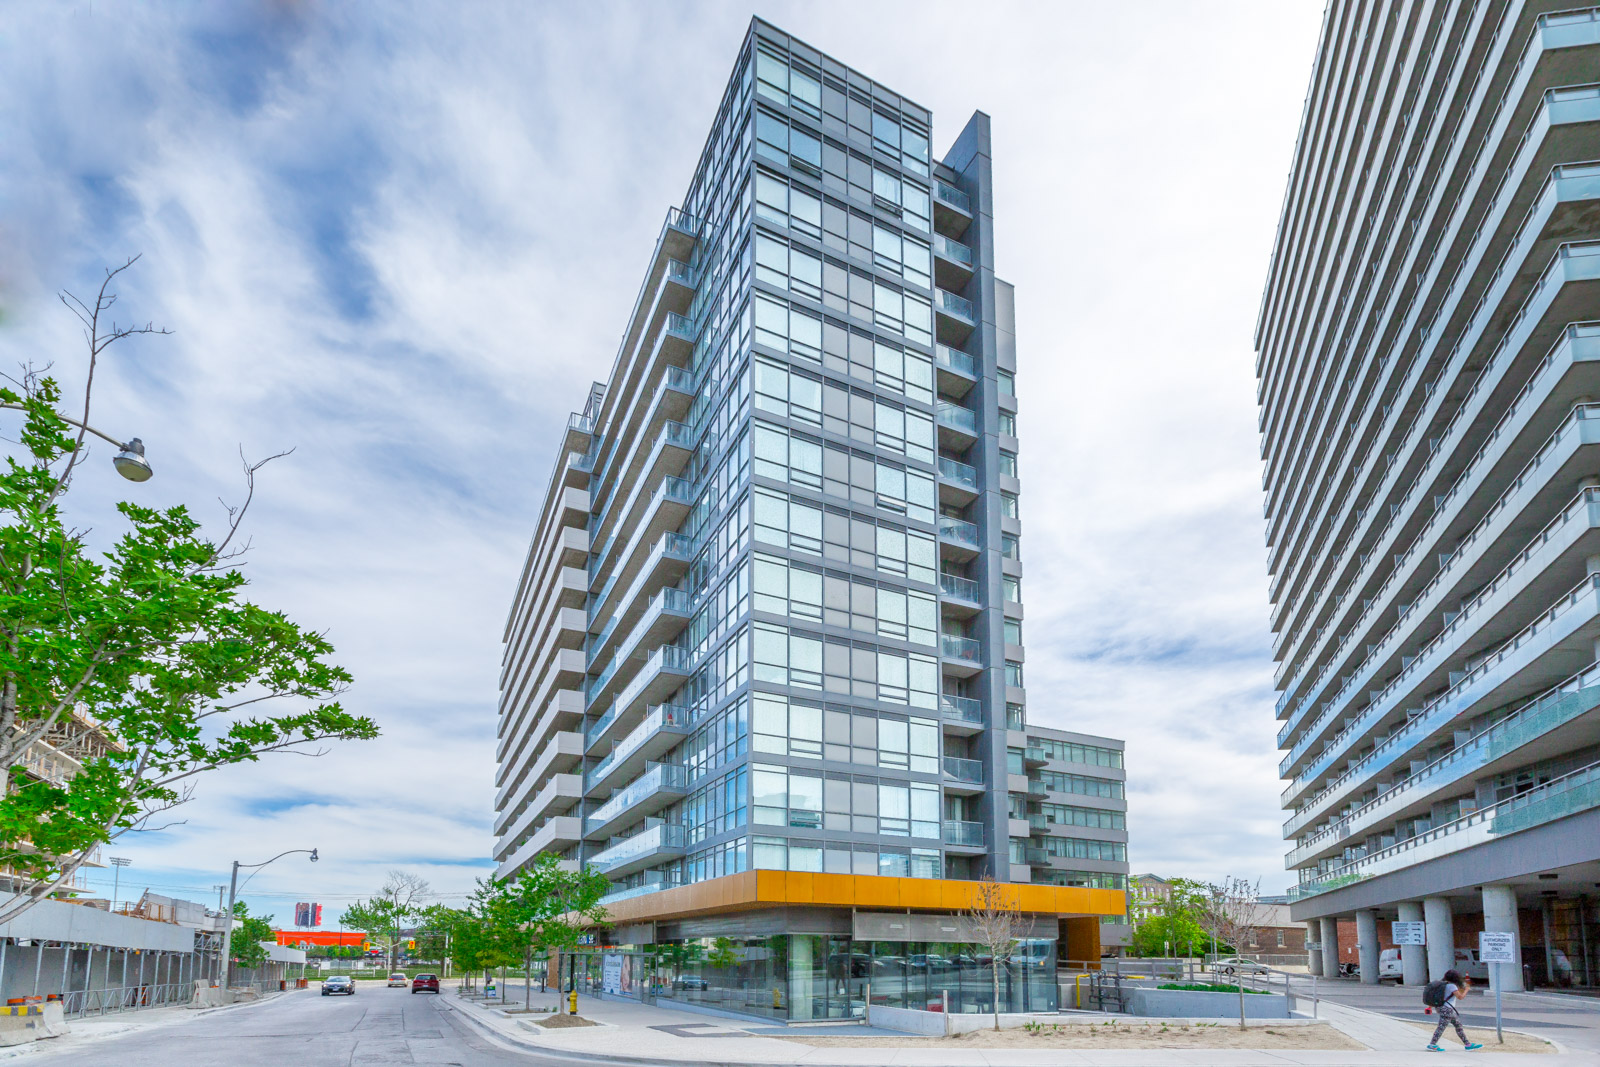 SOLD in 4 Days – 20 Joe Shuster Way Unit 1113, Toronto, ON